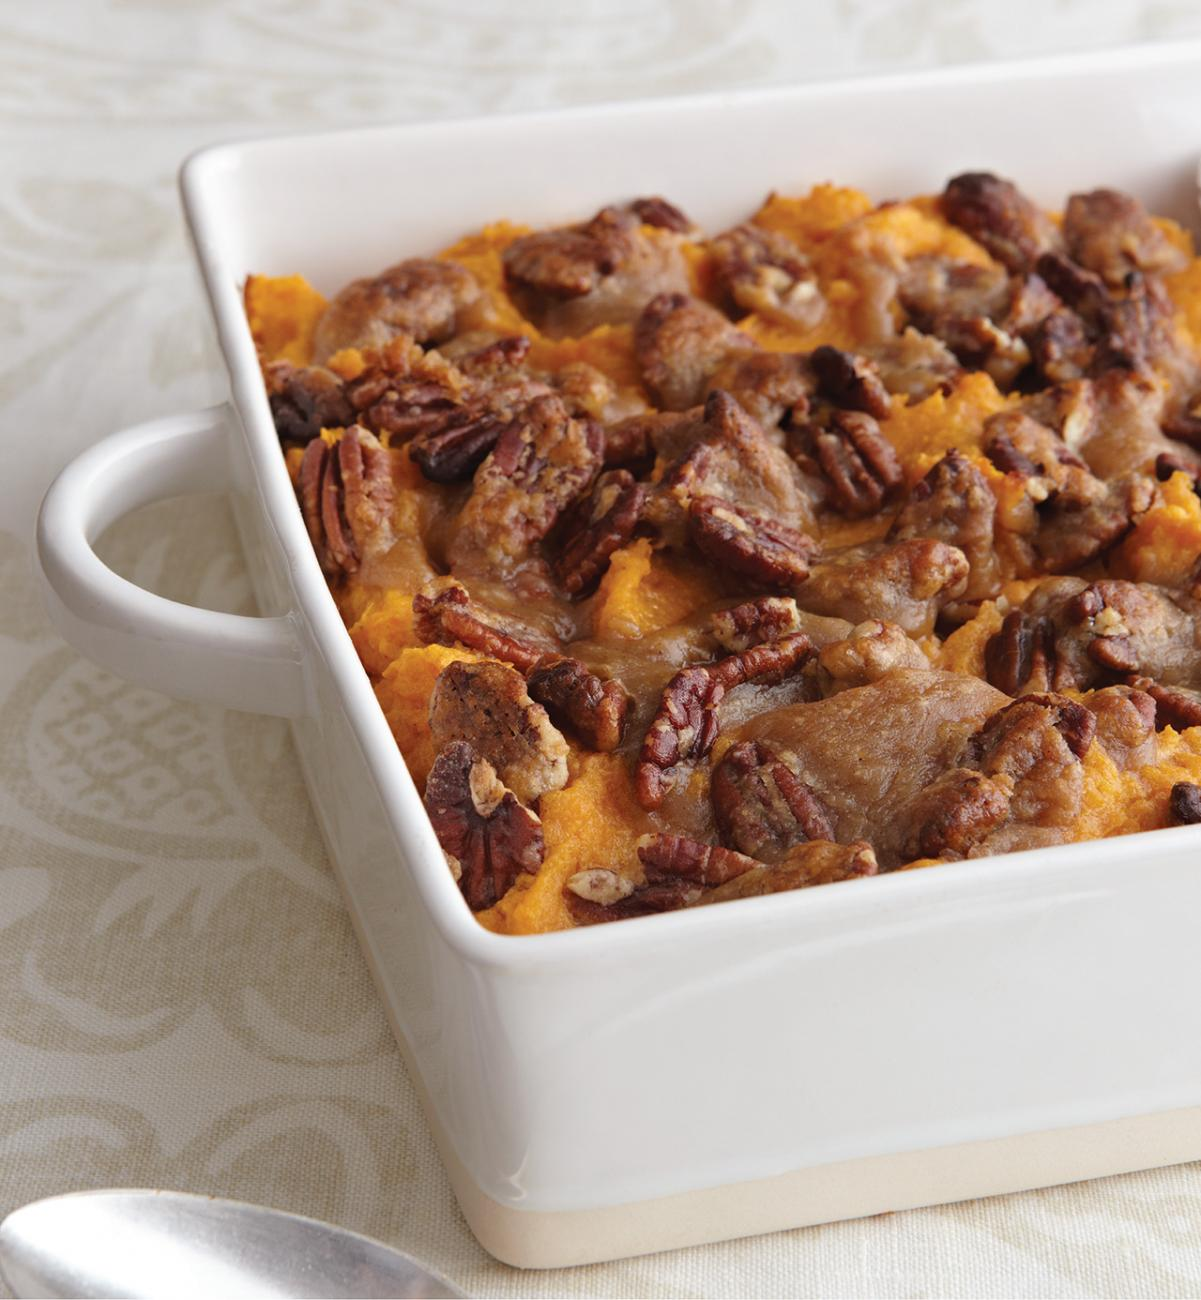 Recipe for Pecan-Crusted Sweet Potato Casserole